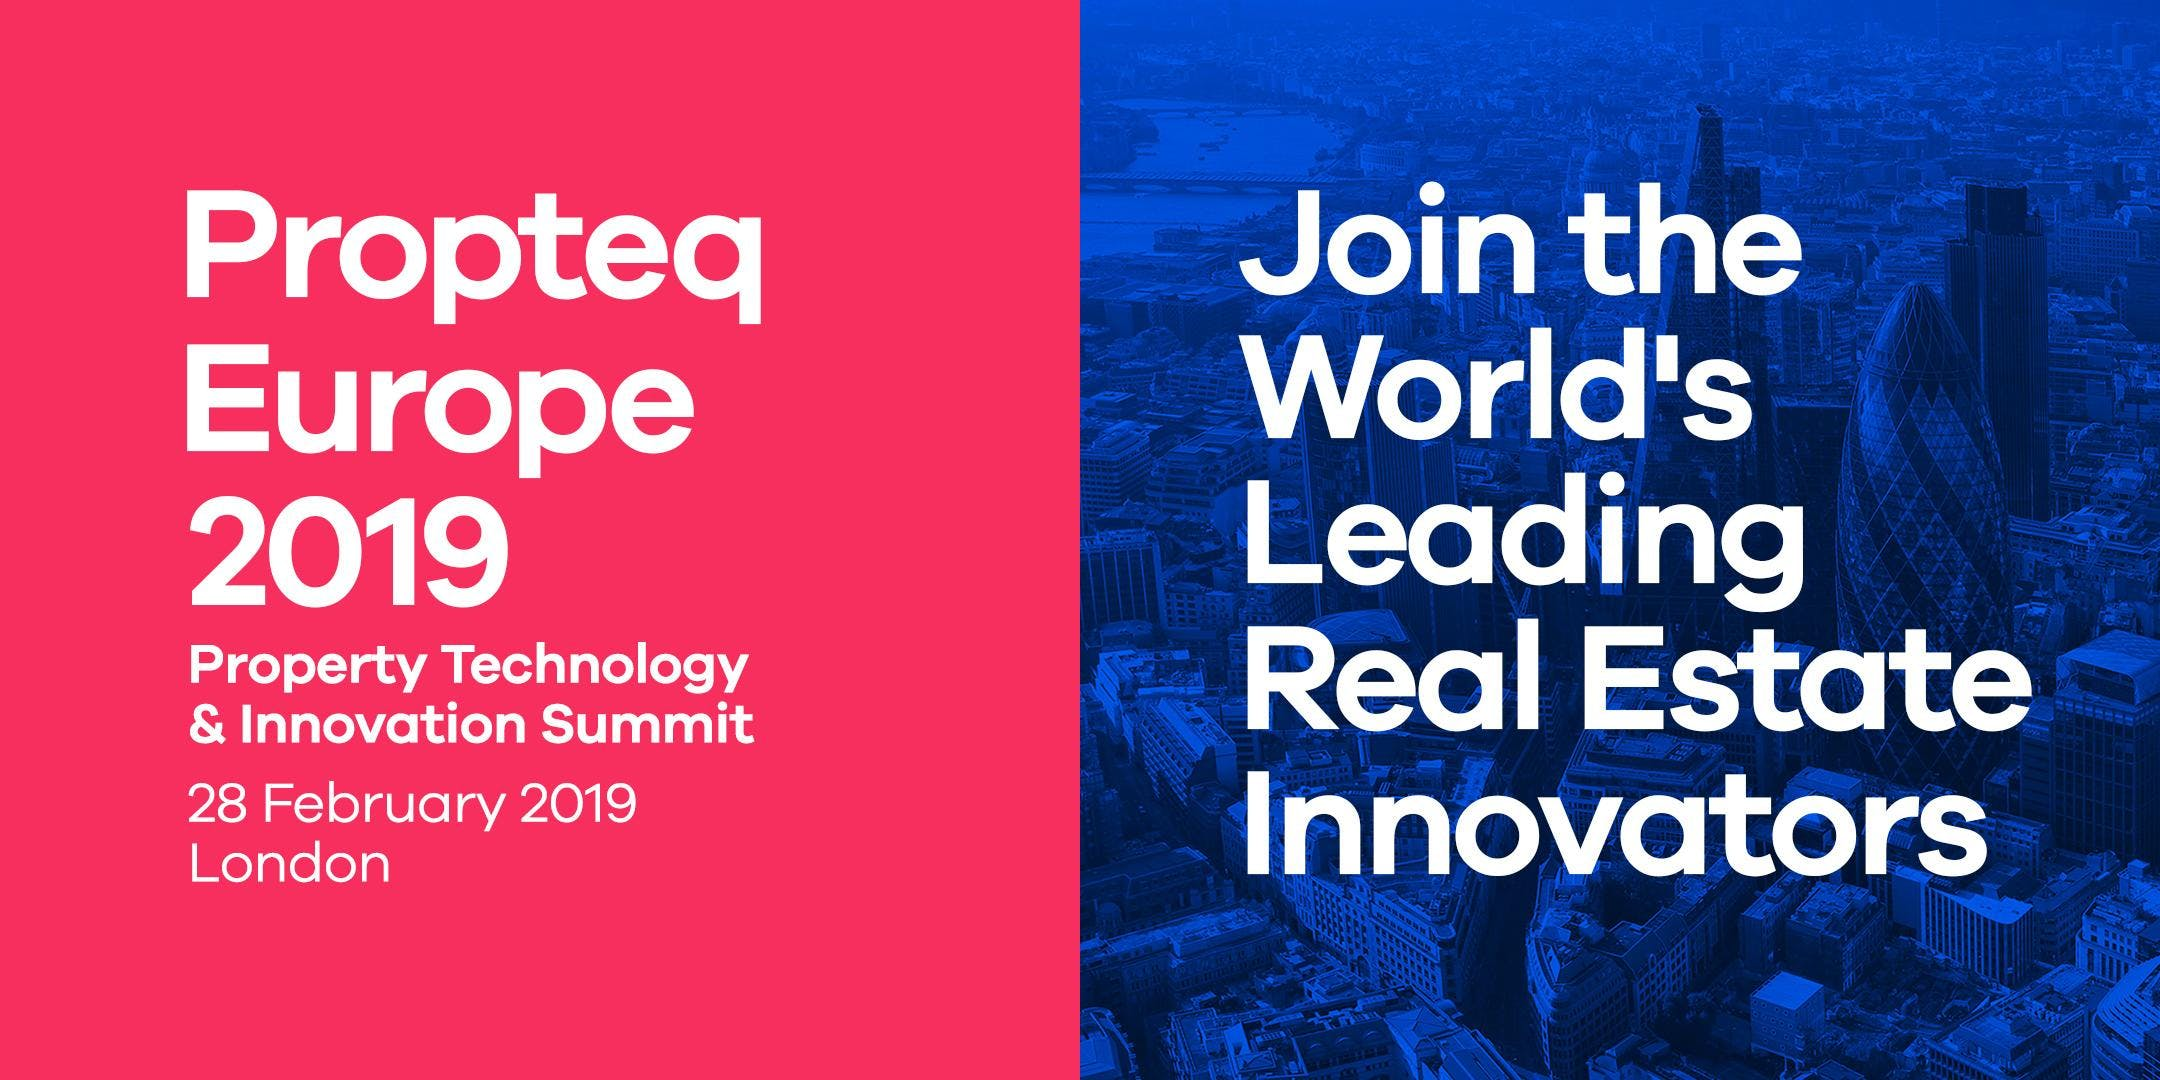 Propteq Europe 2019 - Property Technology and Innovation